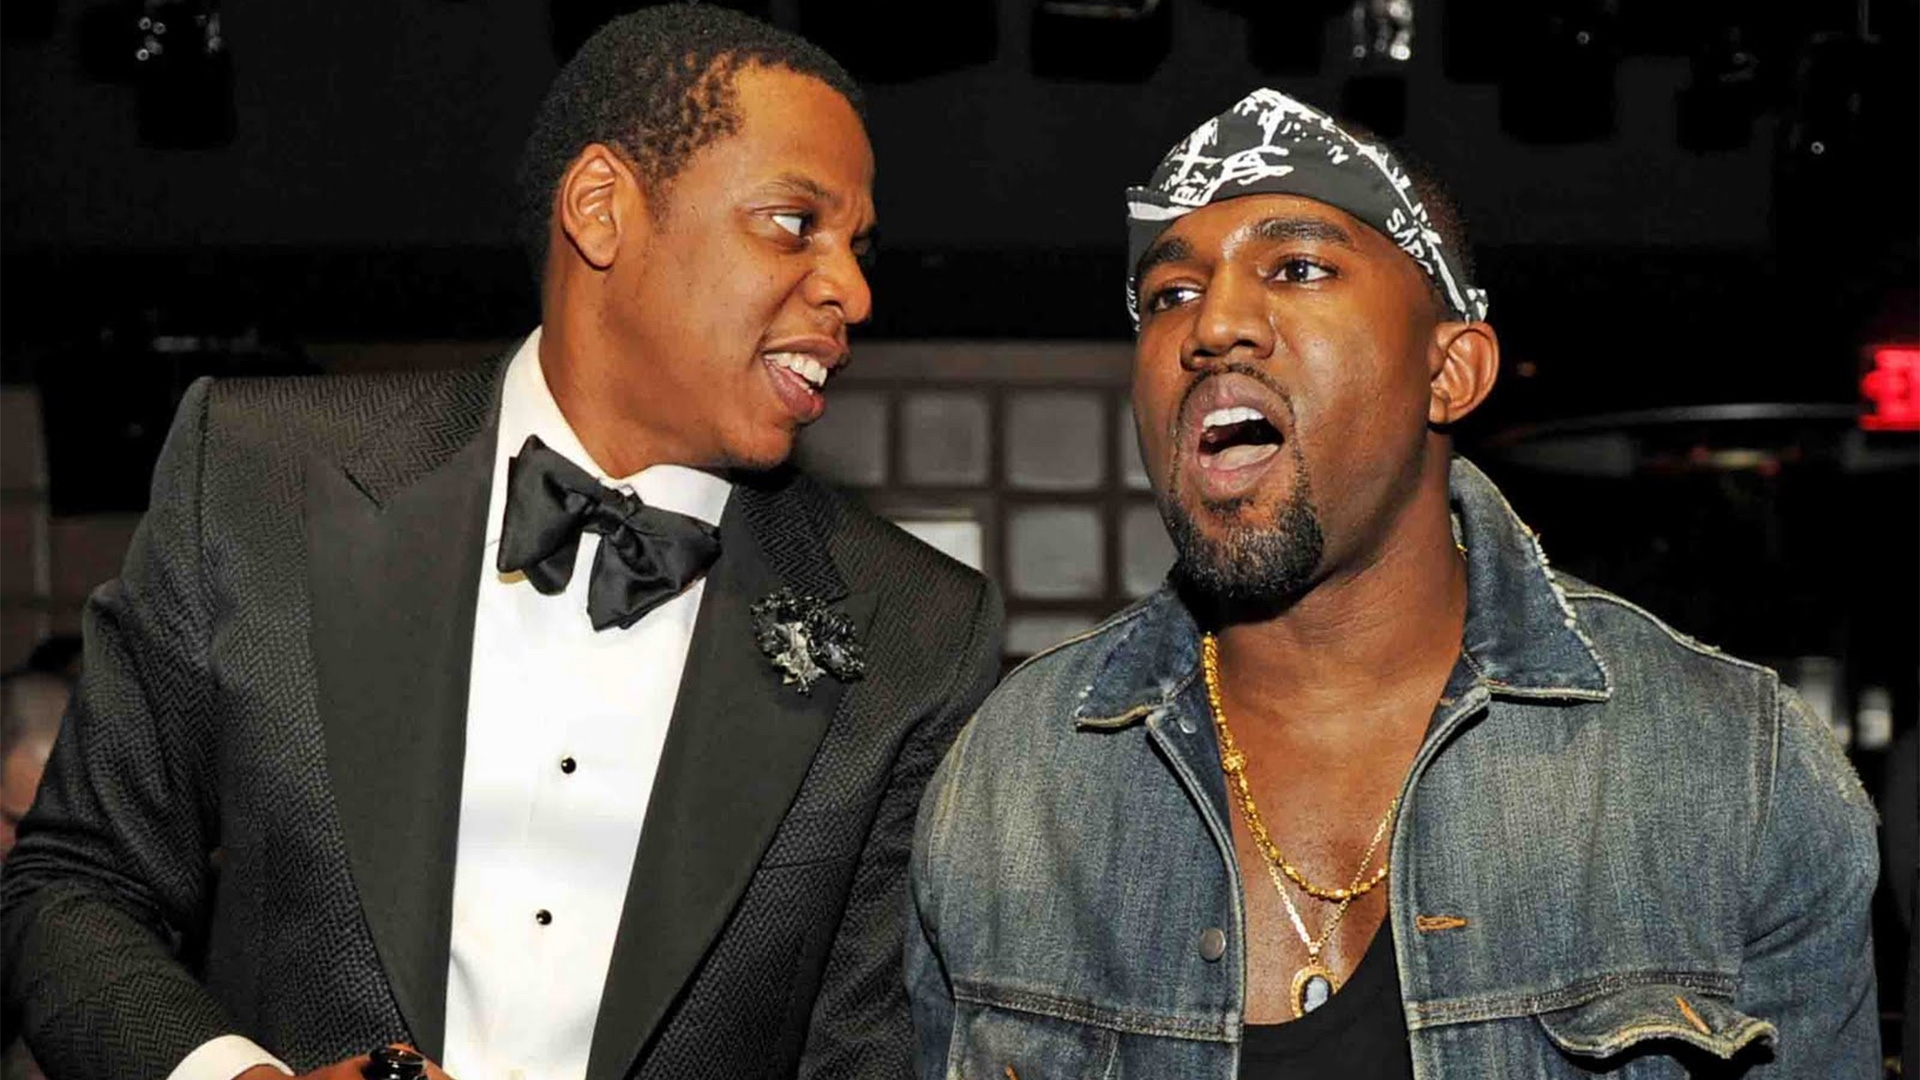 Download Wallpaper 1920x1080 Jay Z Kanye West Look Chain Teeth Full Hd 1080p Hd Background